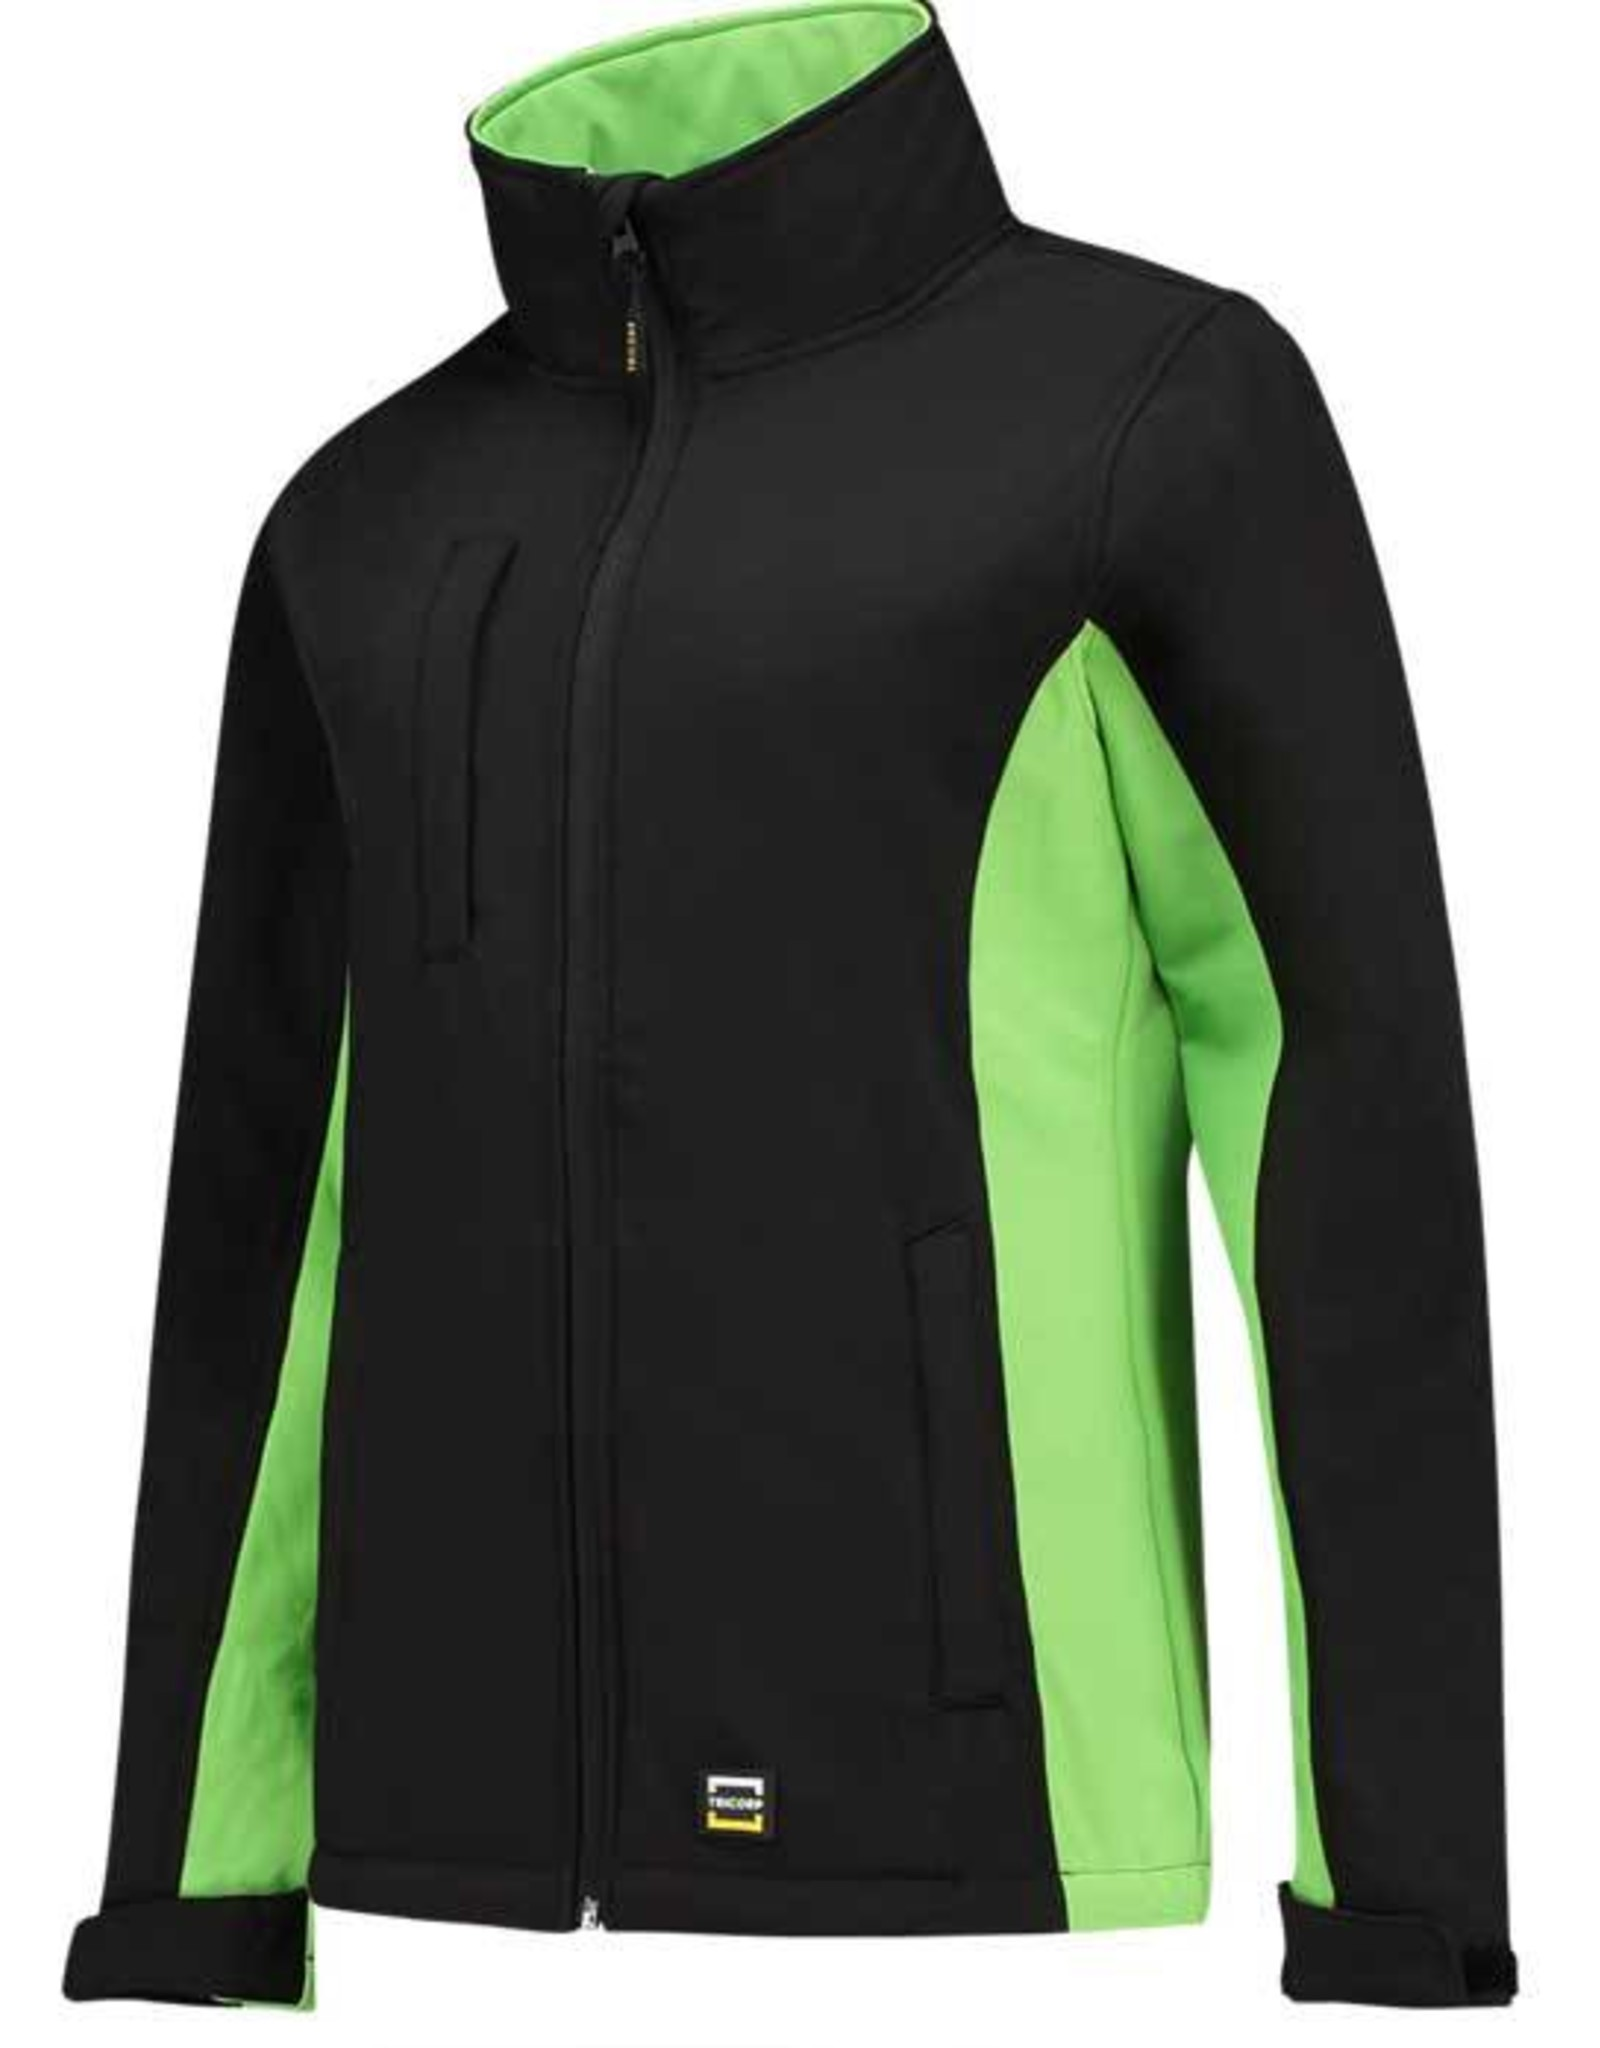 Tricorp Tricorp softshell jas Dames 402008